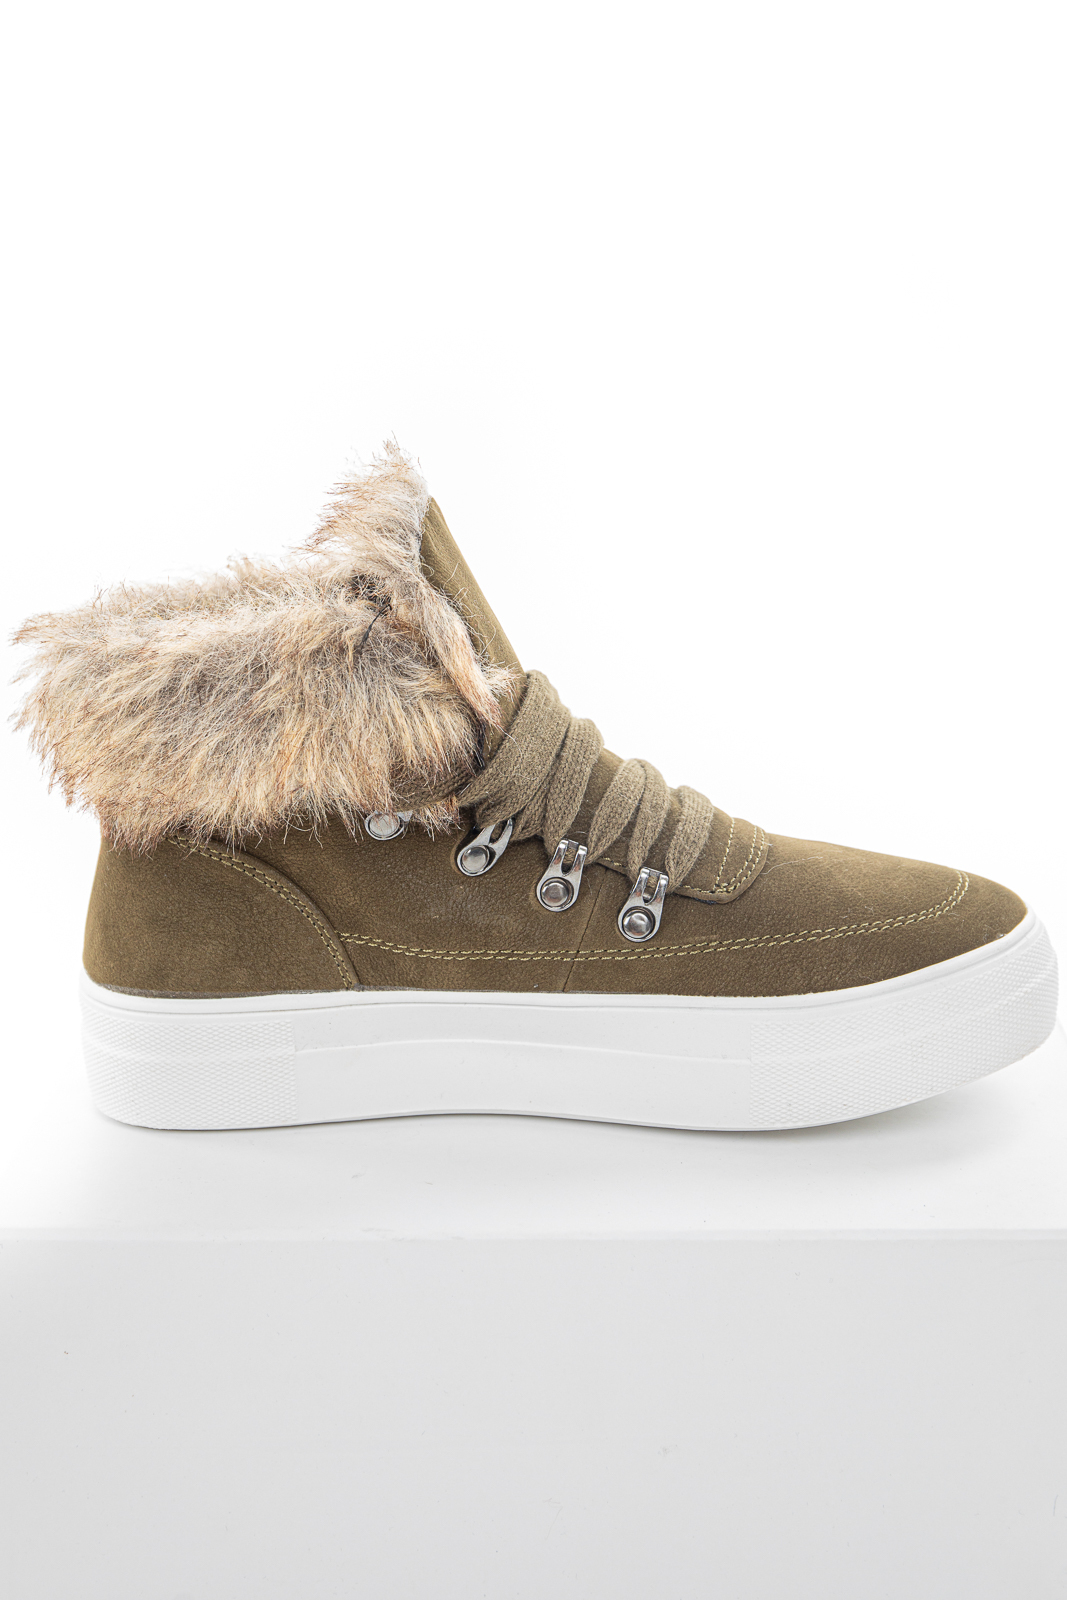 Olive Green Lace Up Sneakers with Faux